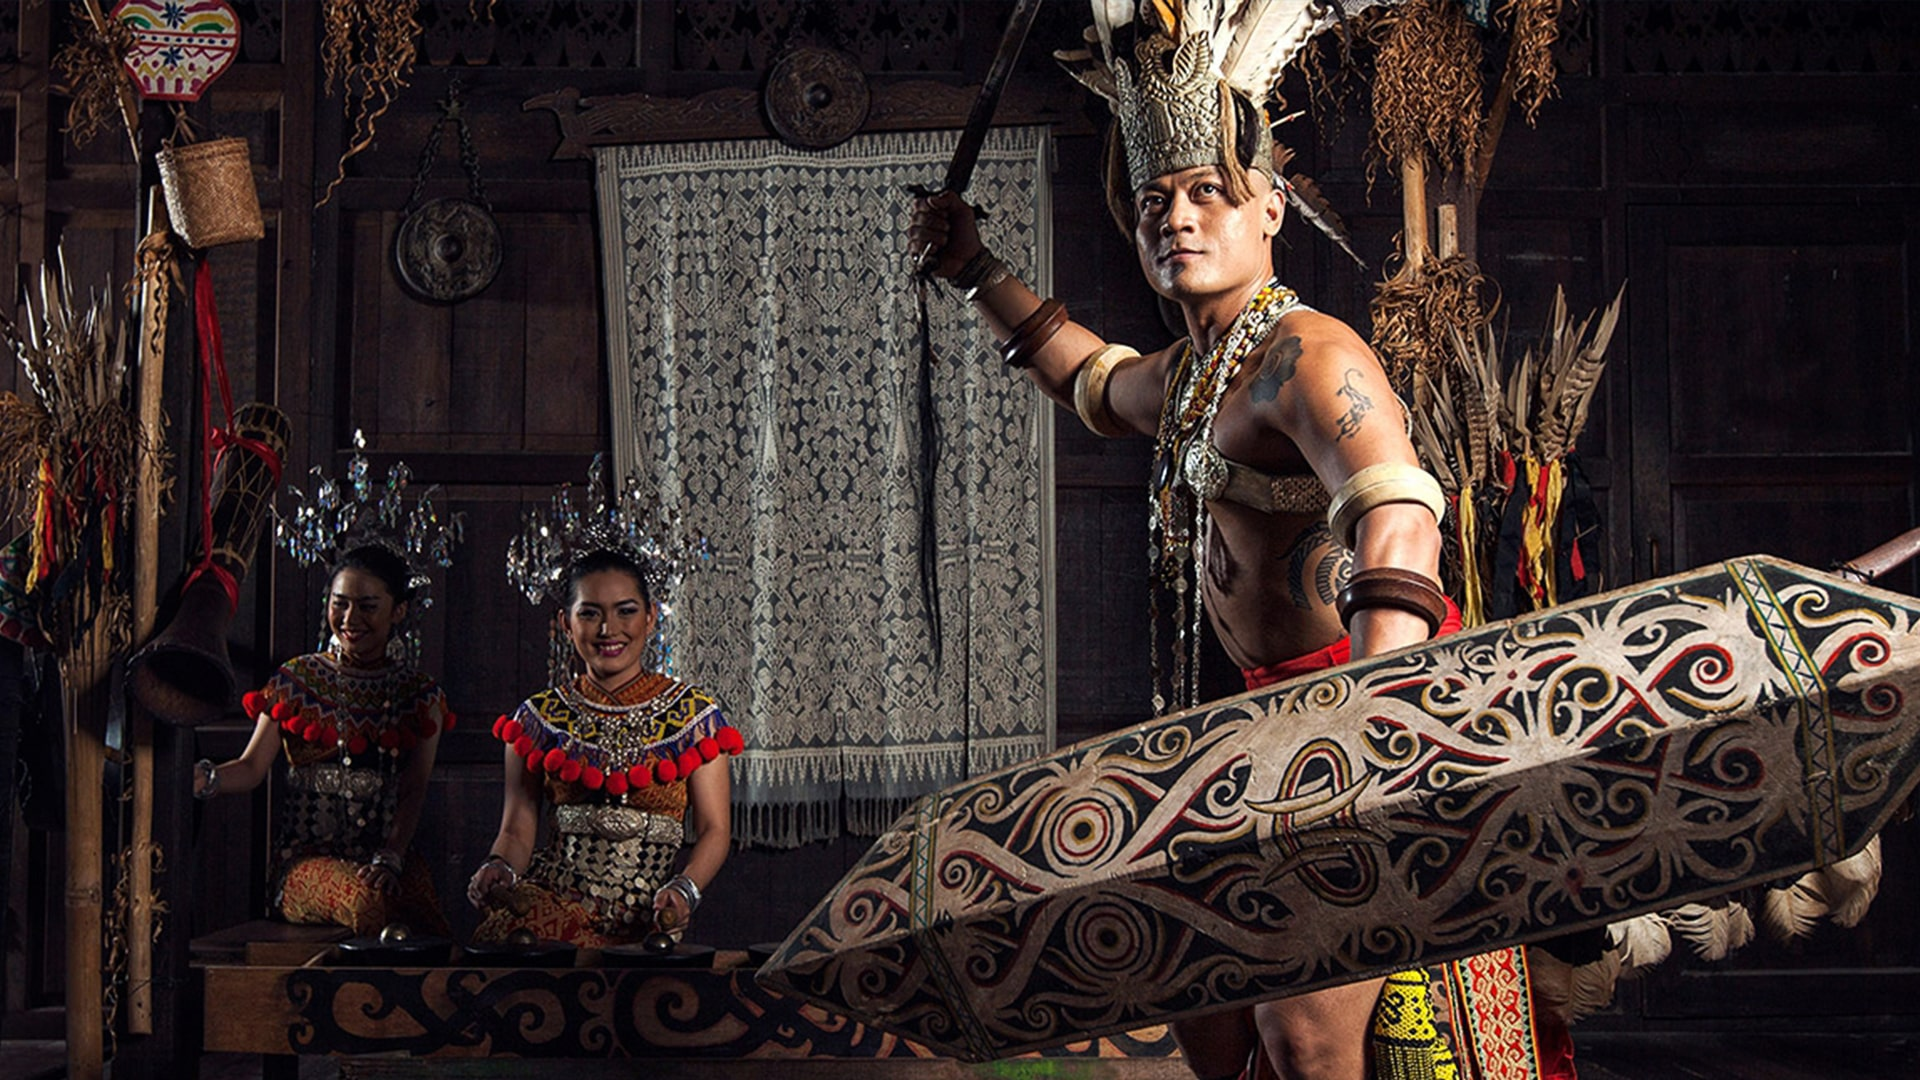 Experience Sarawak in Half-a-Day at Sarawak's only Living Museum